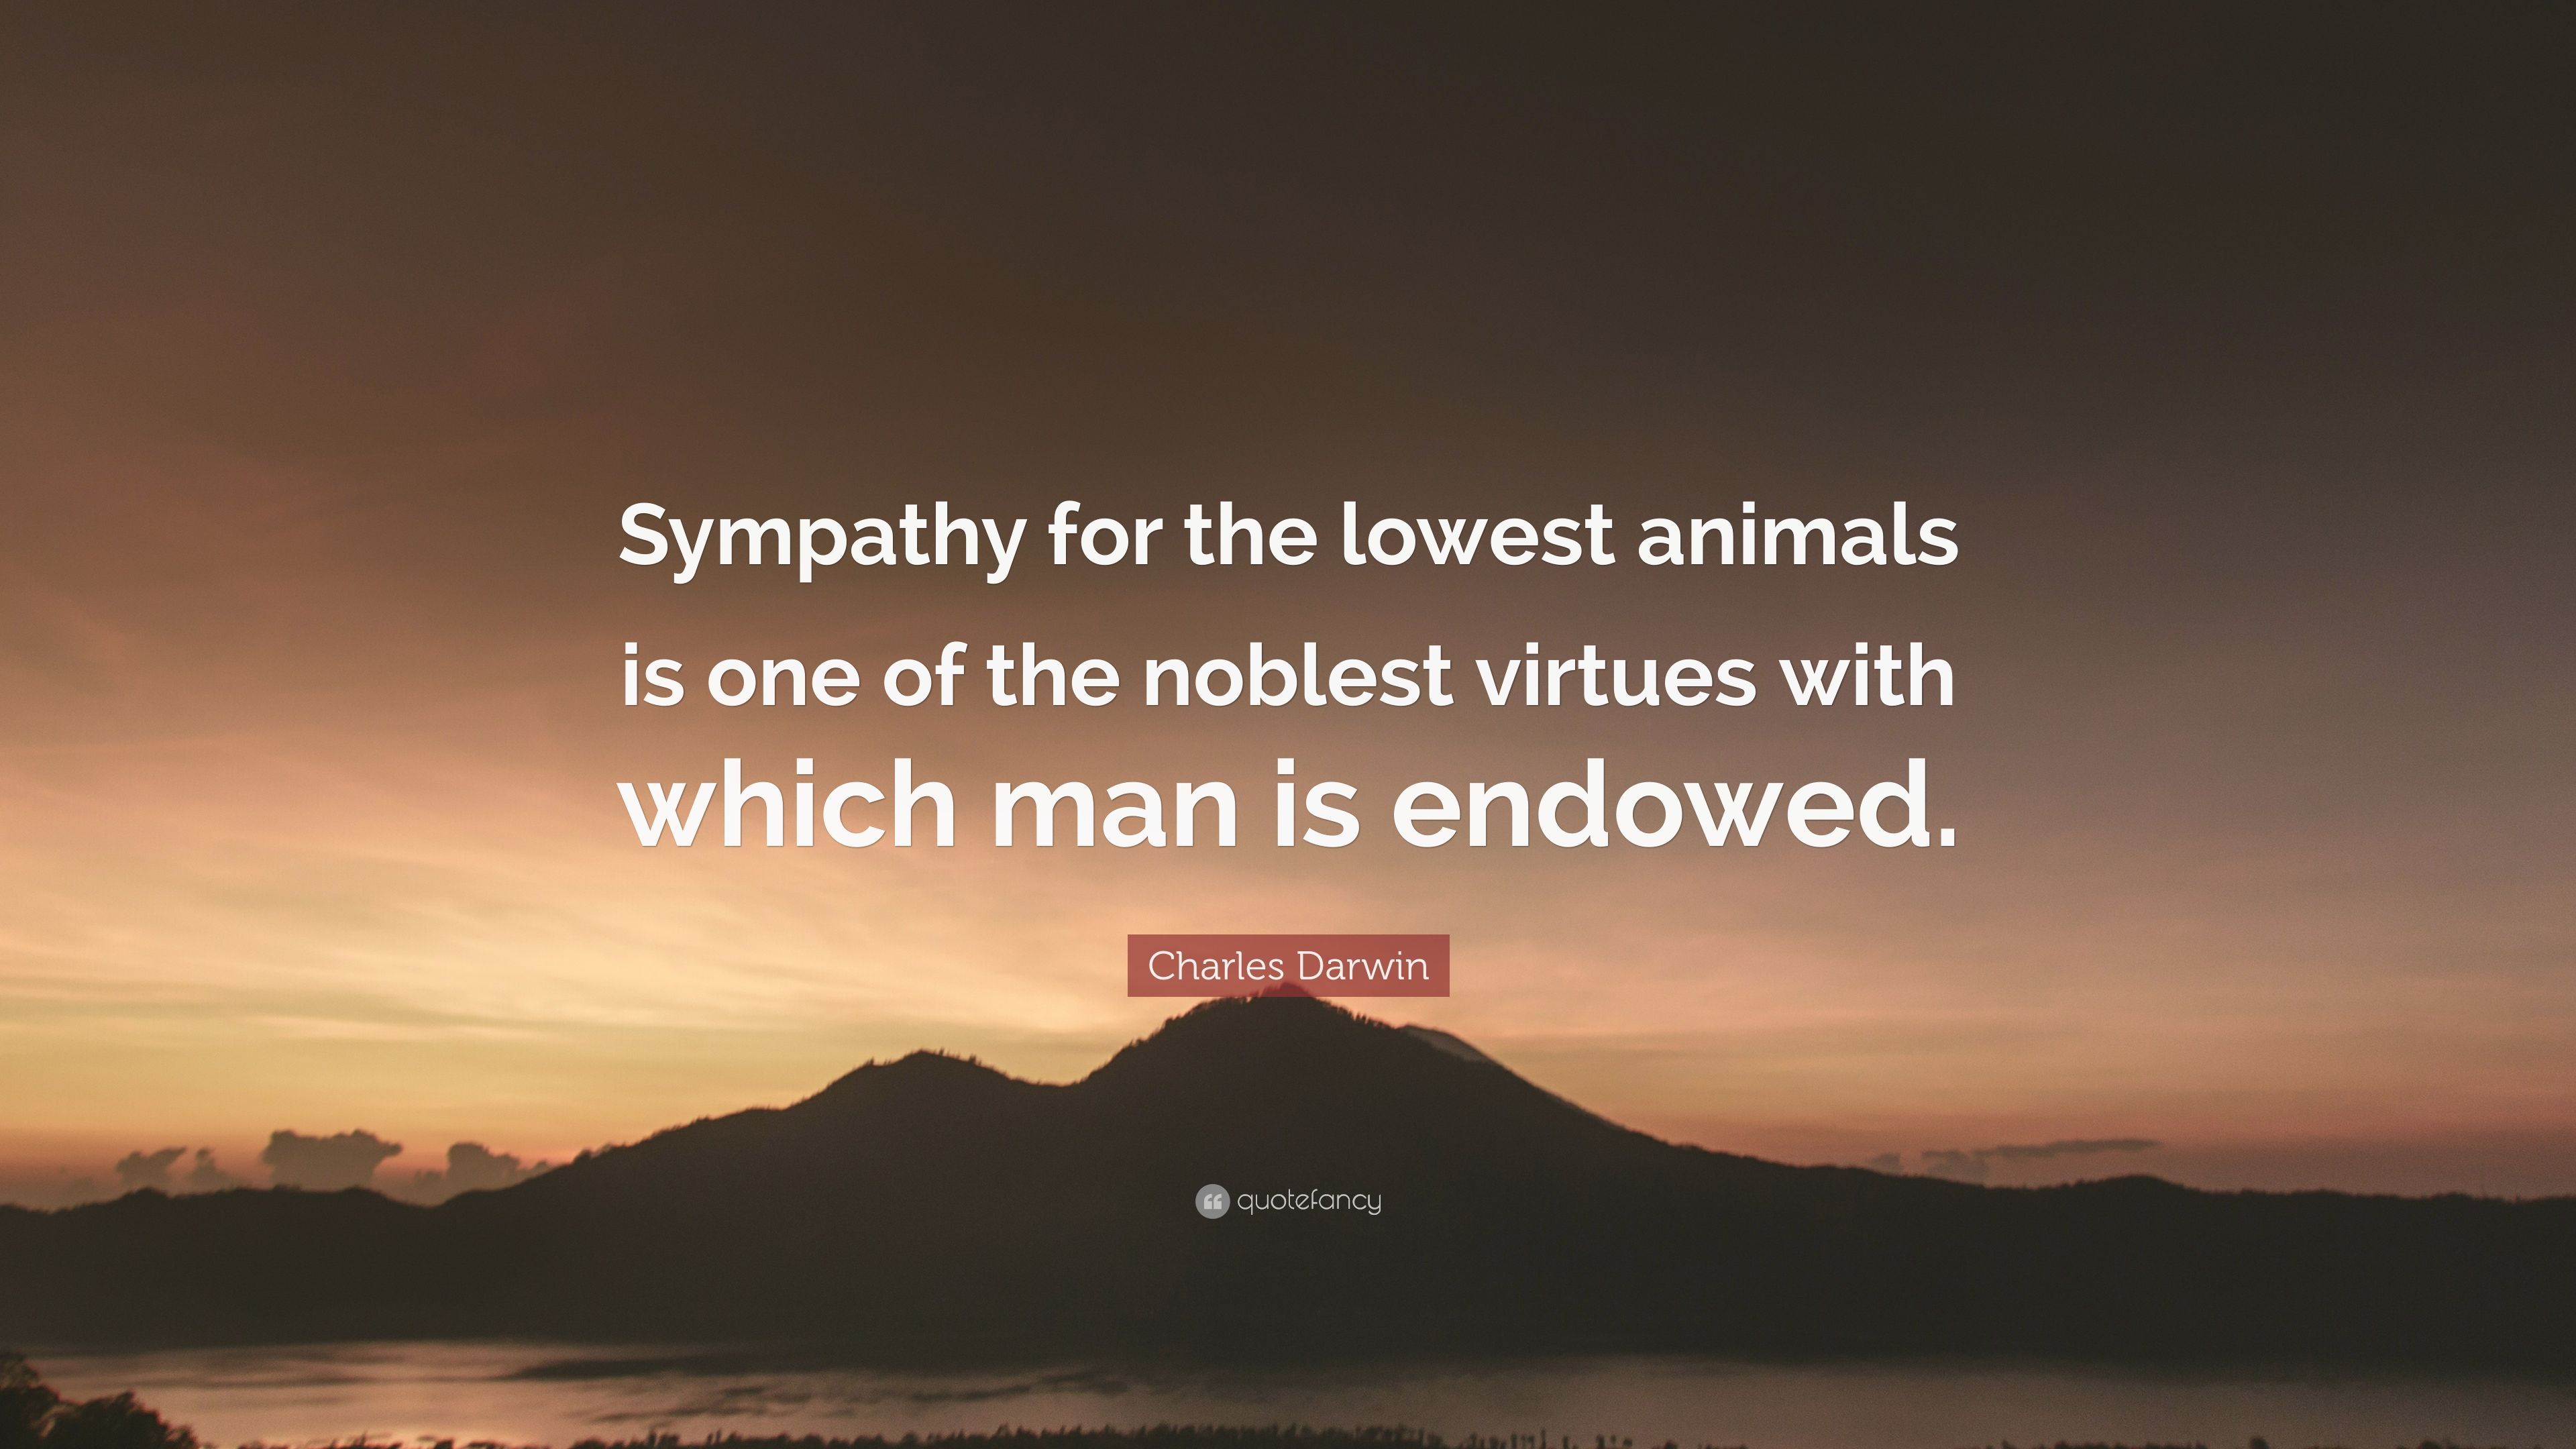 Charles darwin quote sympathy for the lowest animals is one of the charles darwin quote sympathy for the lowest animals is one of the noblest virtues thecheapjerseys Gallery